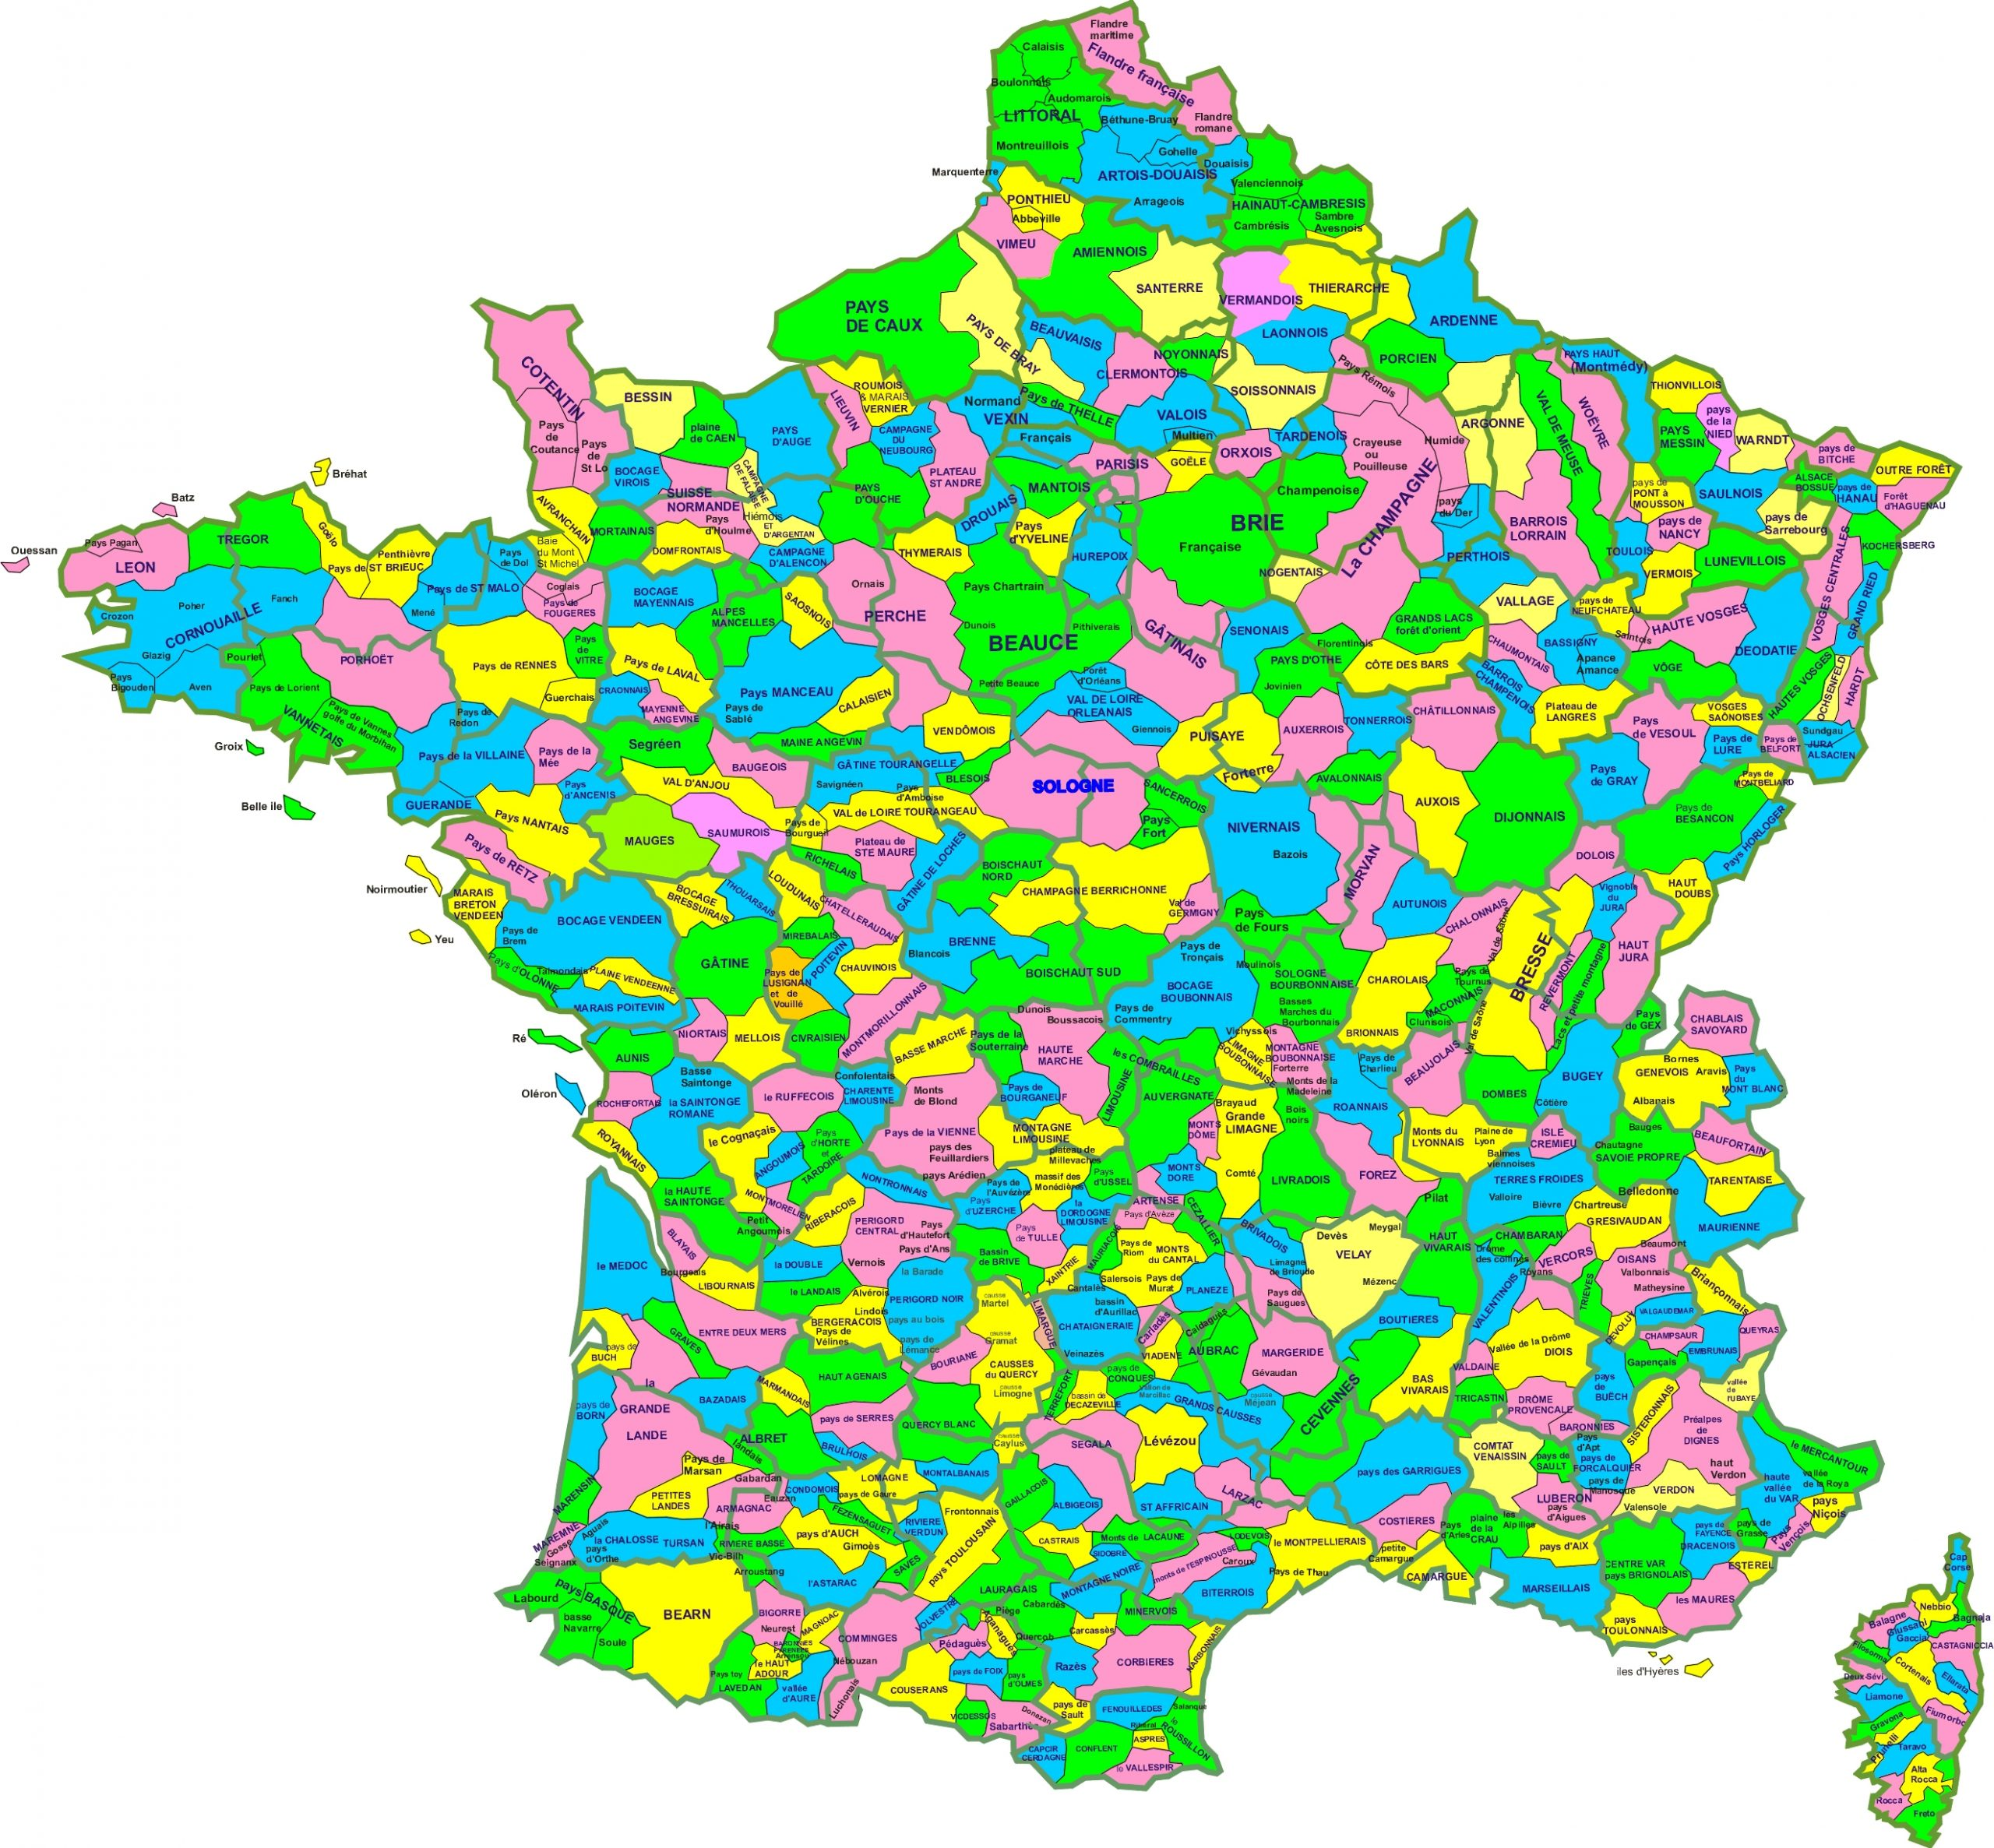 F9B0141 Carte France Region | Wiring Resources à Carte De La France Région